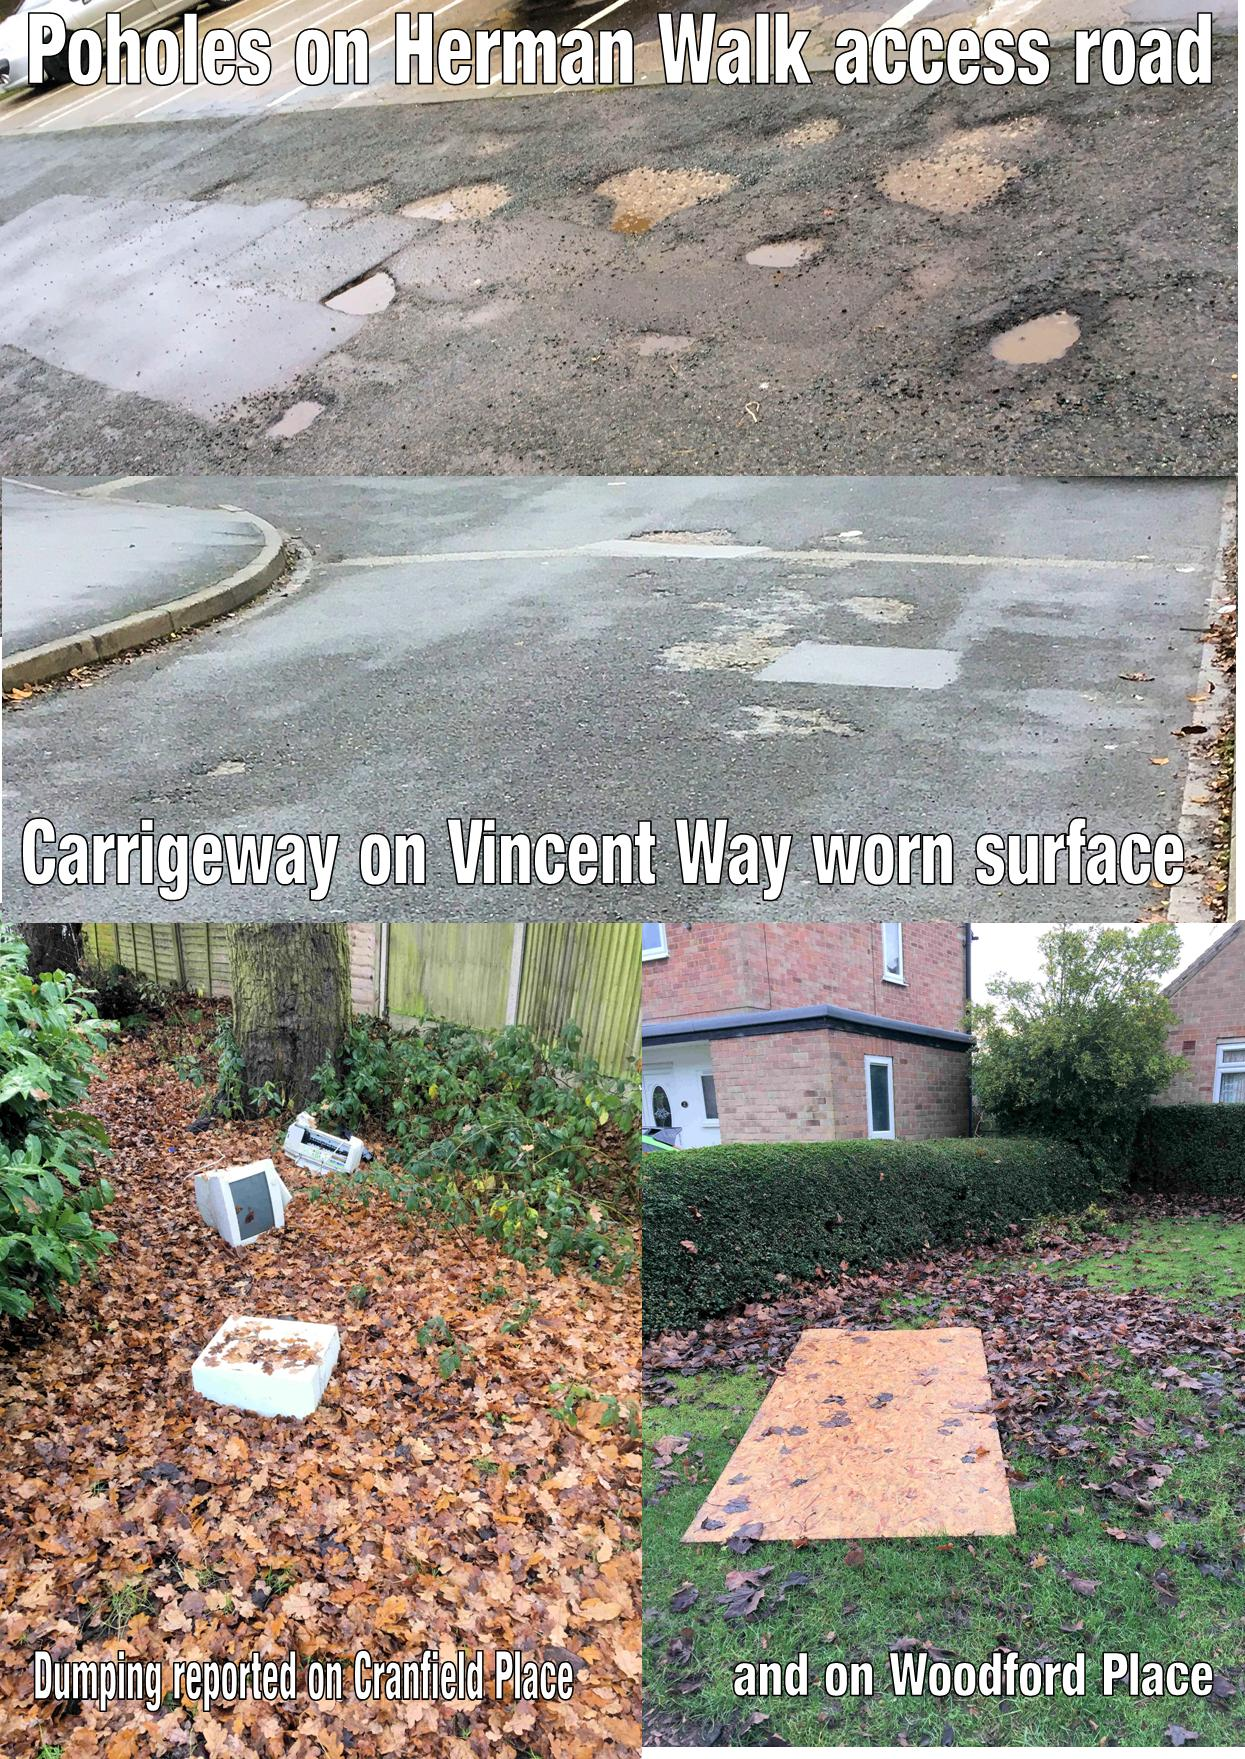 Locla Coucnillorsd Sheena Jackson and Andrew Waller have  reported problems with potholes on Herman Walk and Huntsman's Walk, worn carriageway surfaces in Vincent Way plus fly-tipping in Greenwood Grove and in Woodford Place